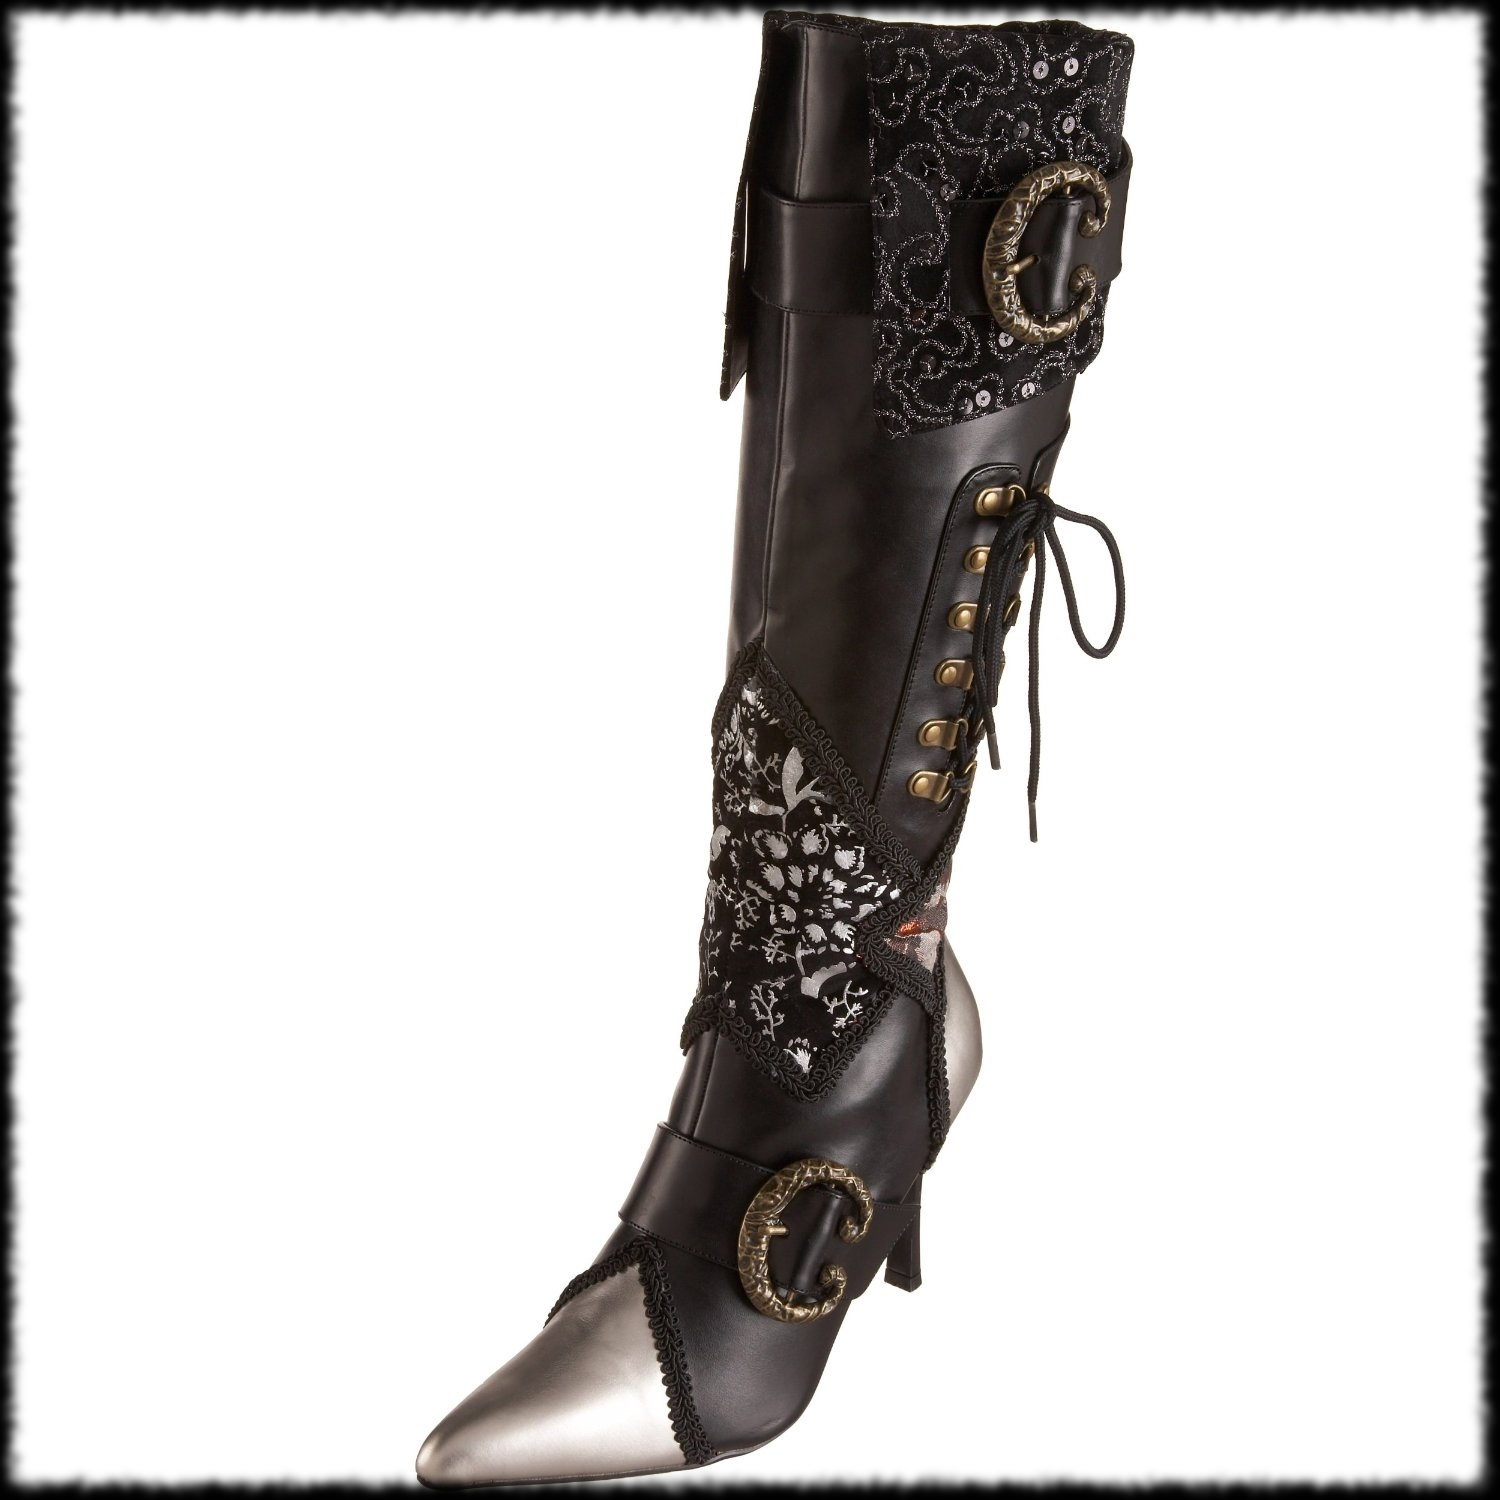 Women's Deluxe Pirate Boot Halloween Costume Accessory Idea